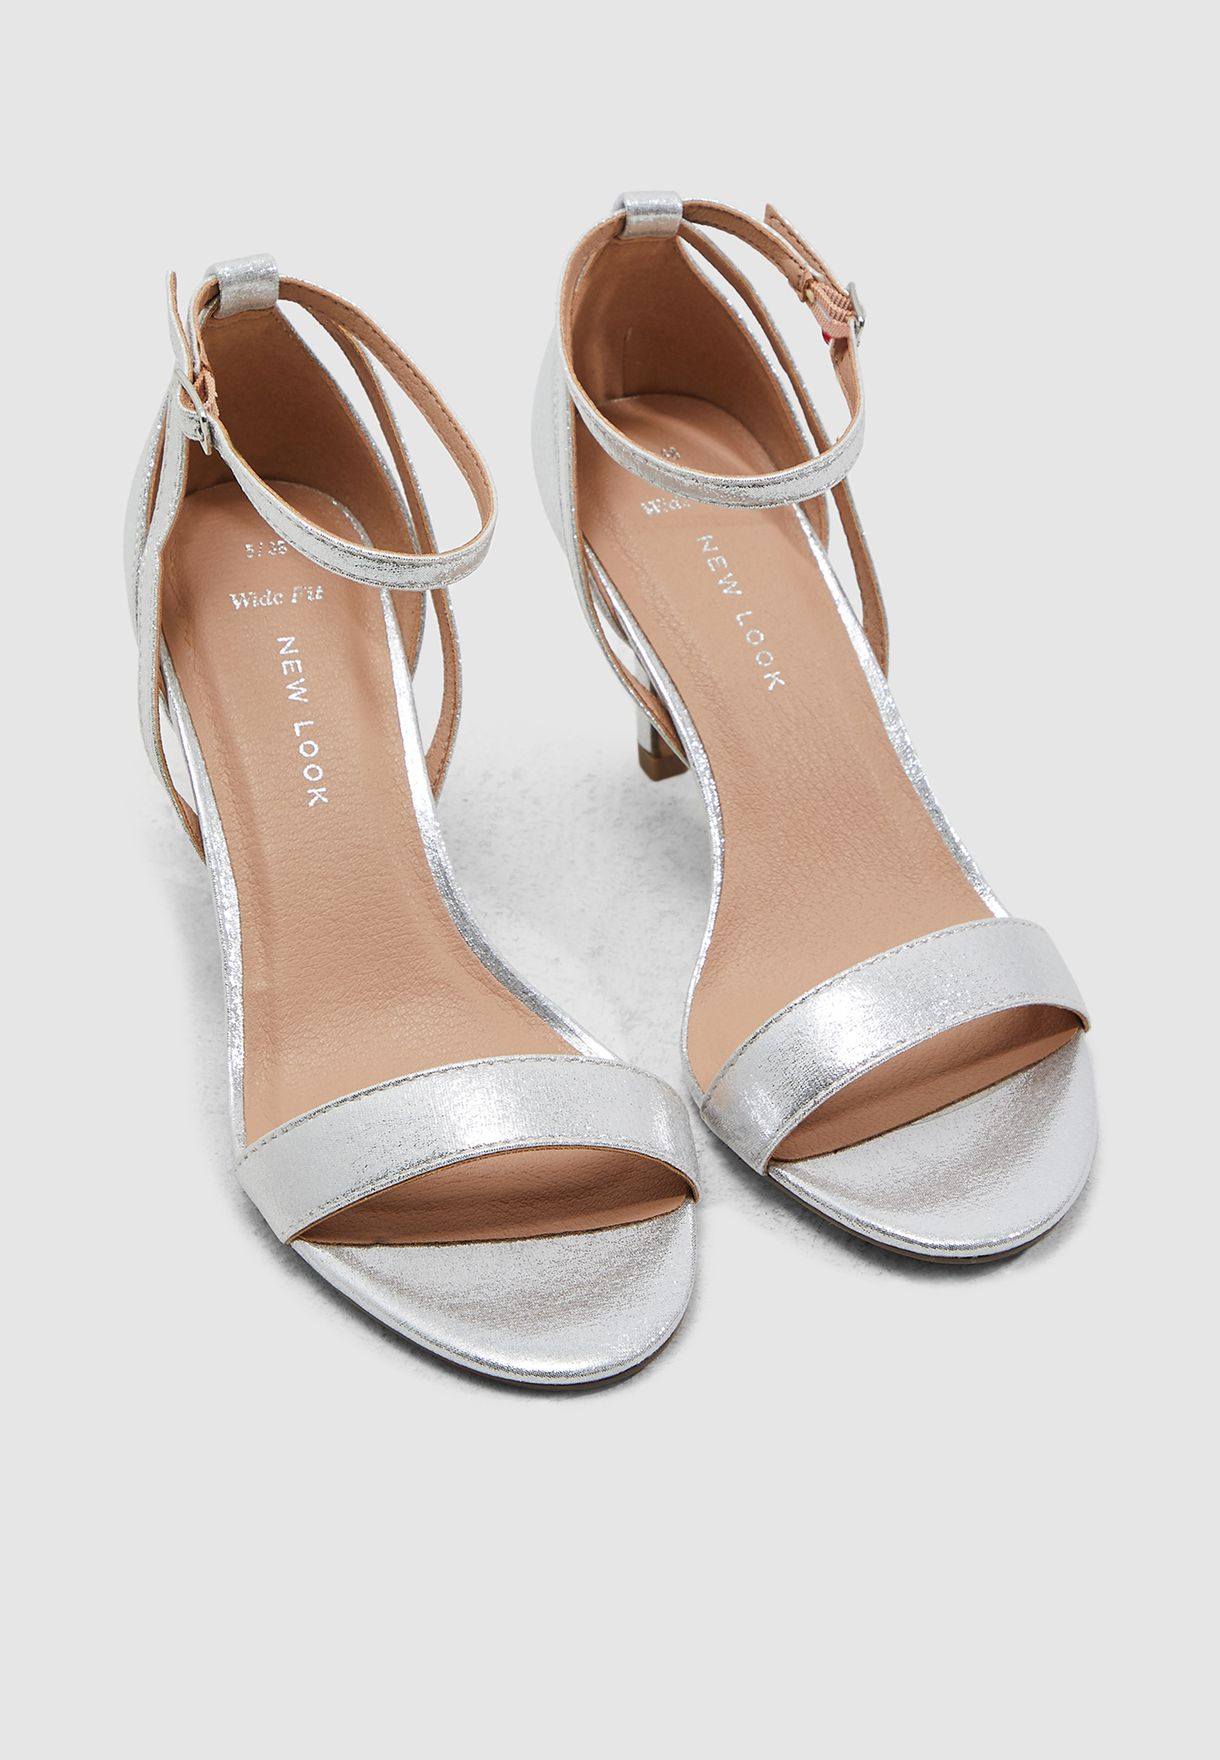 Wide Fit Trinny Sandal - Silver